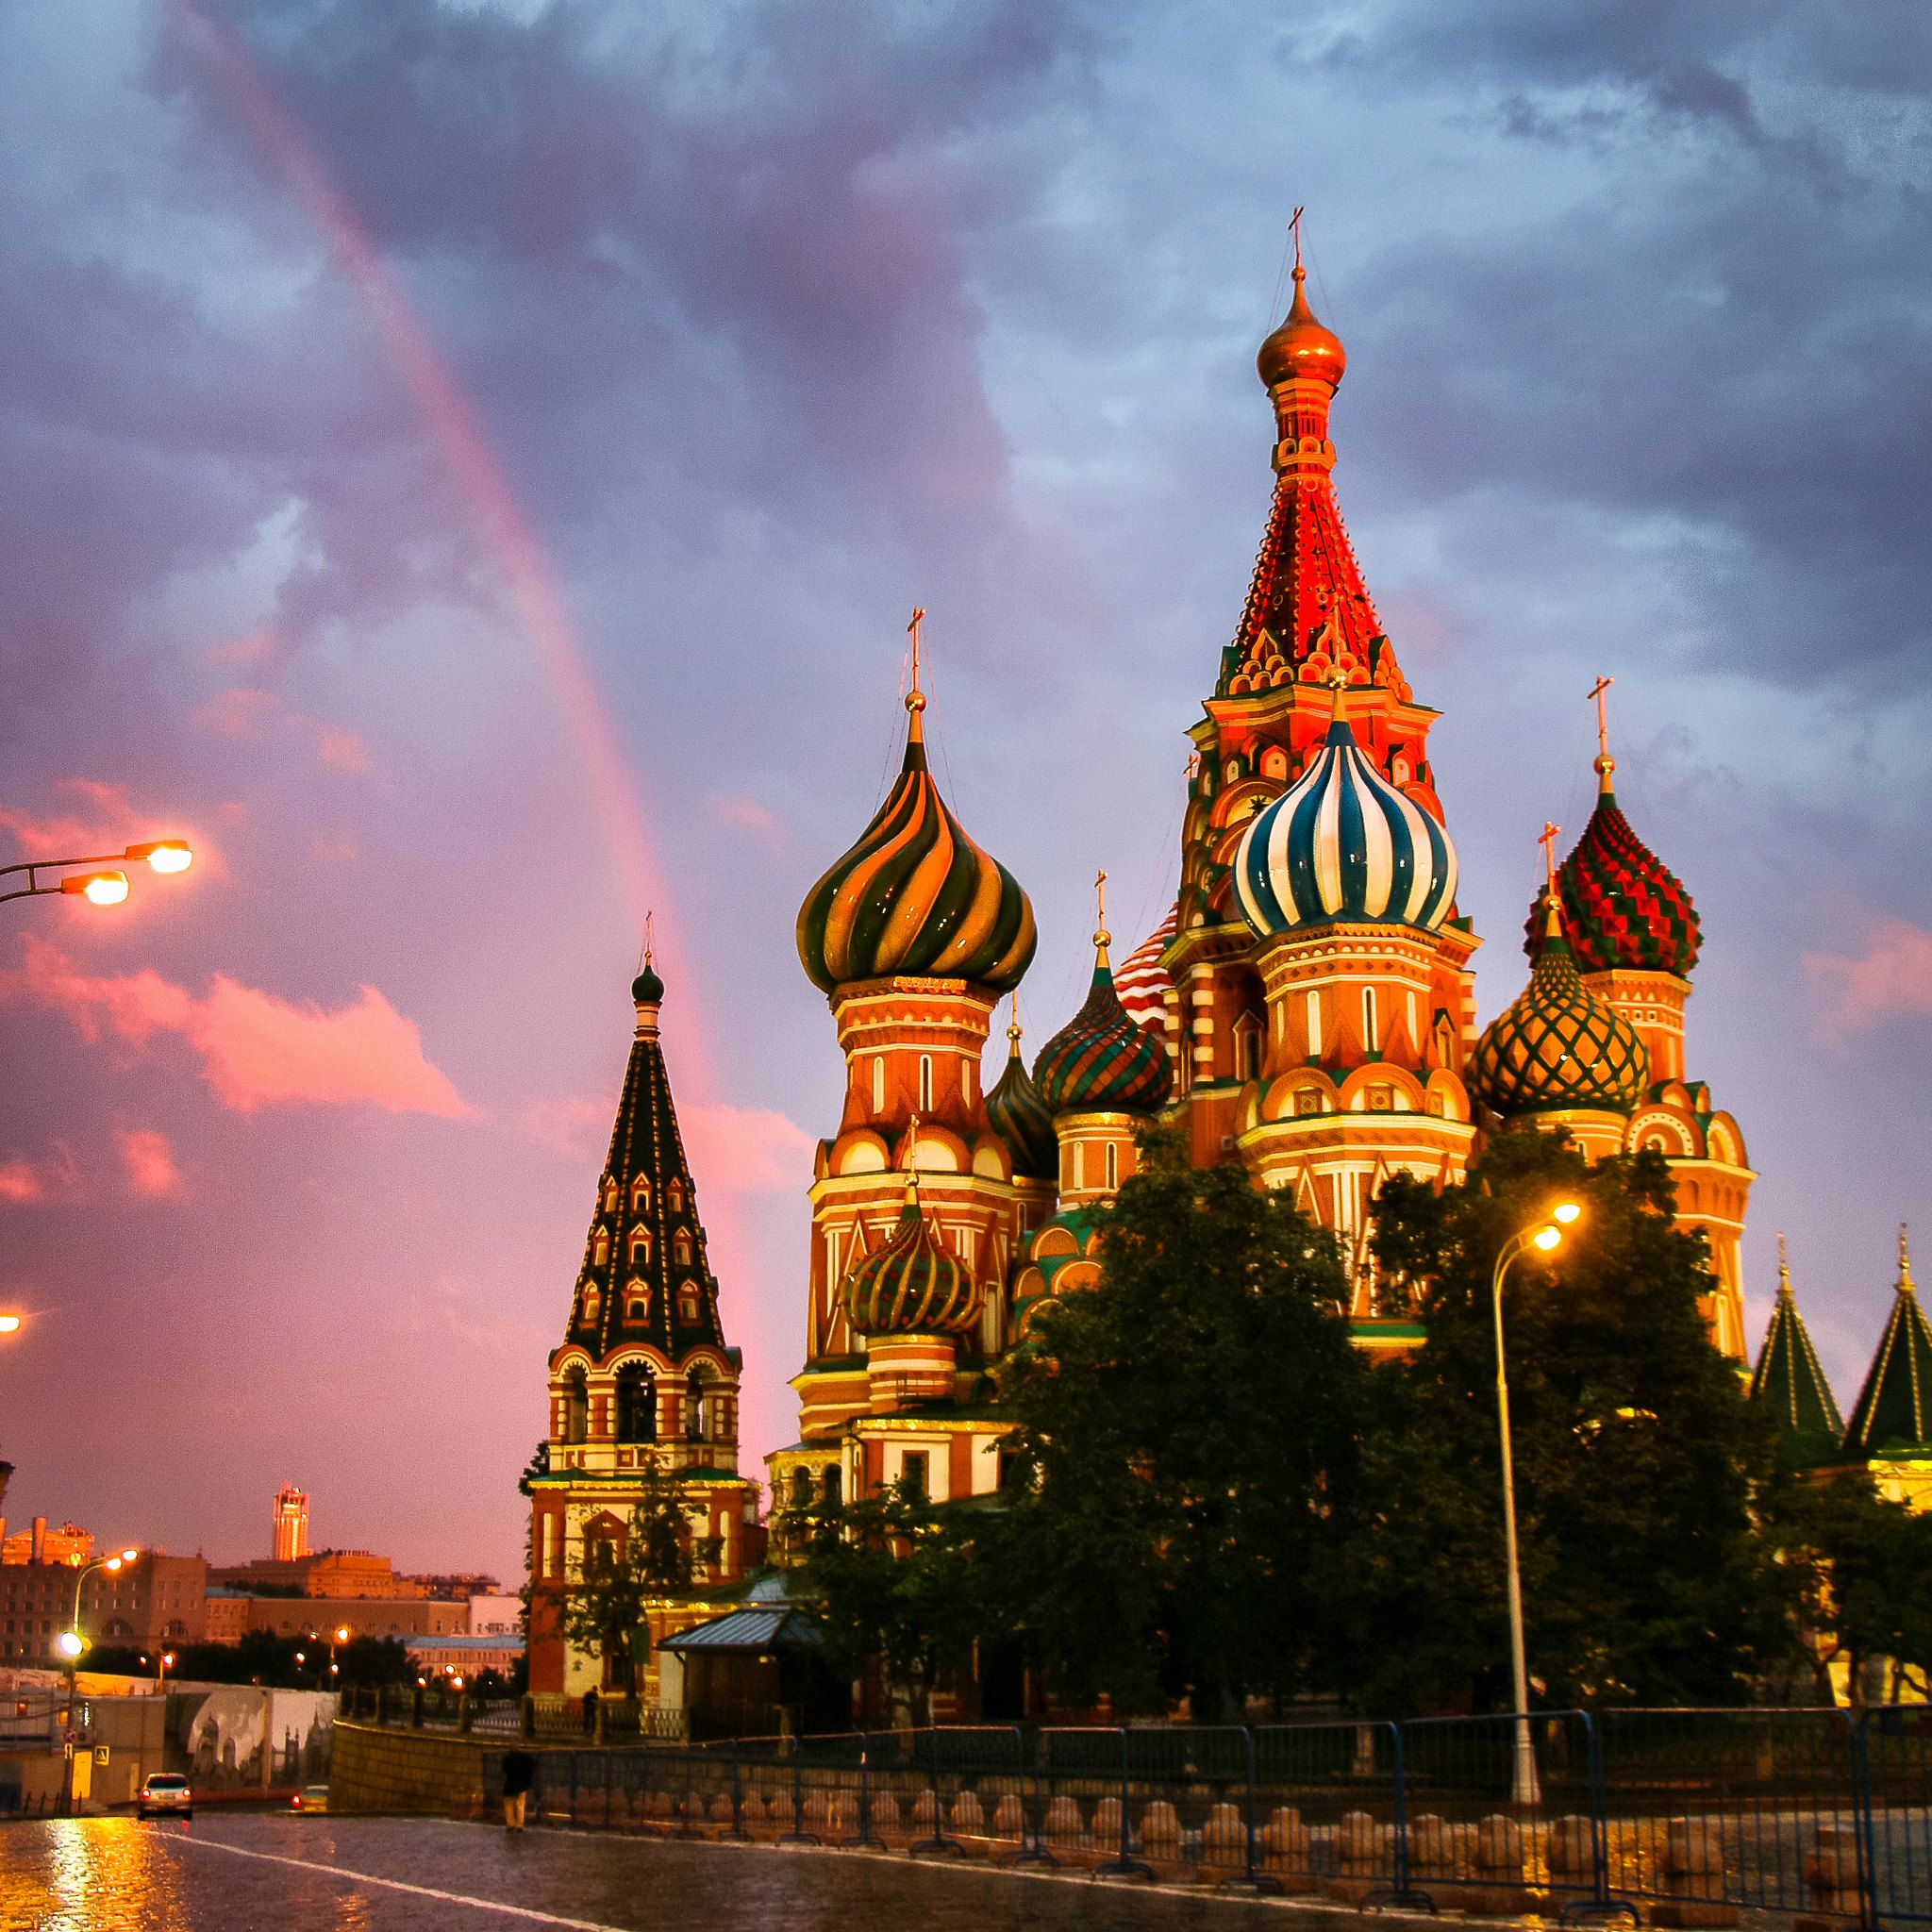 Saint Basil's Cathedral, Moscow, Russia - photo by travelingmipo under CC BY 2.0